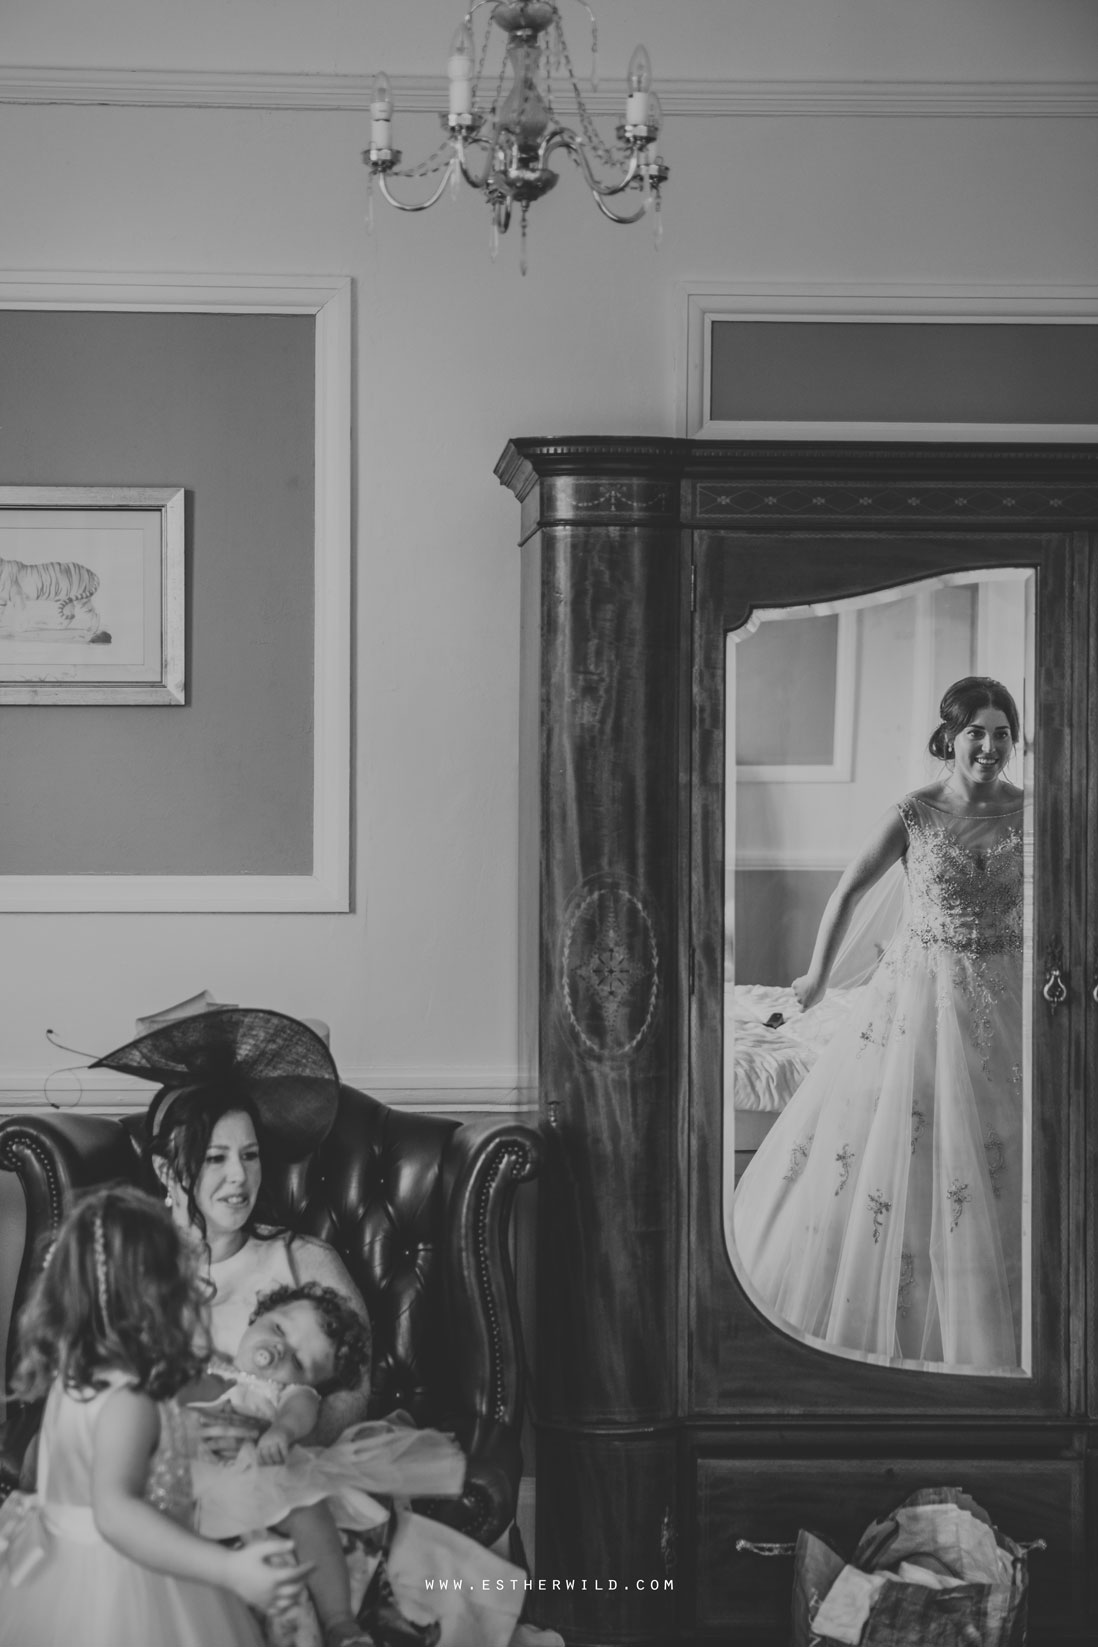 Lynford_Hall_Wedding_Thetford_Mundford_Esther_Wild_Photographer_IMG_1037-2.jpg